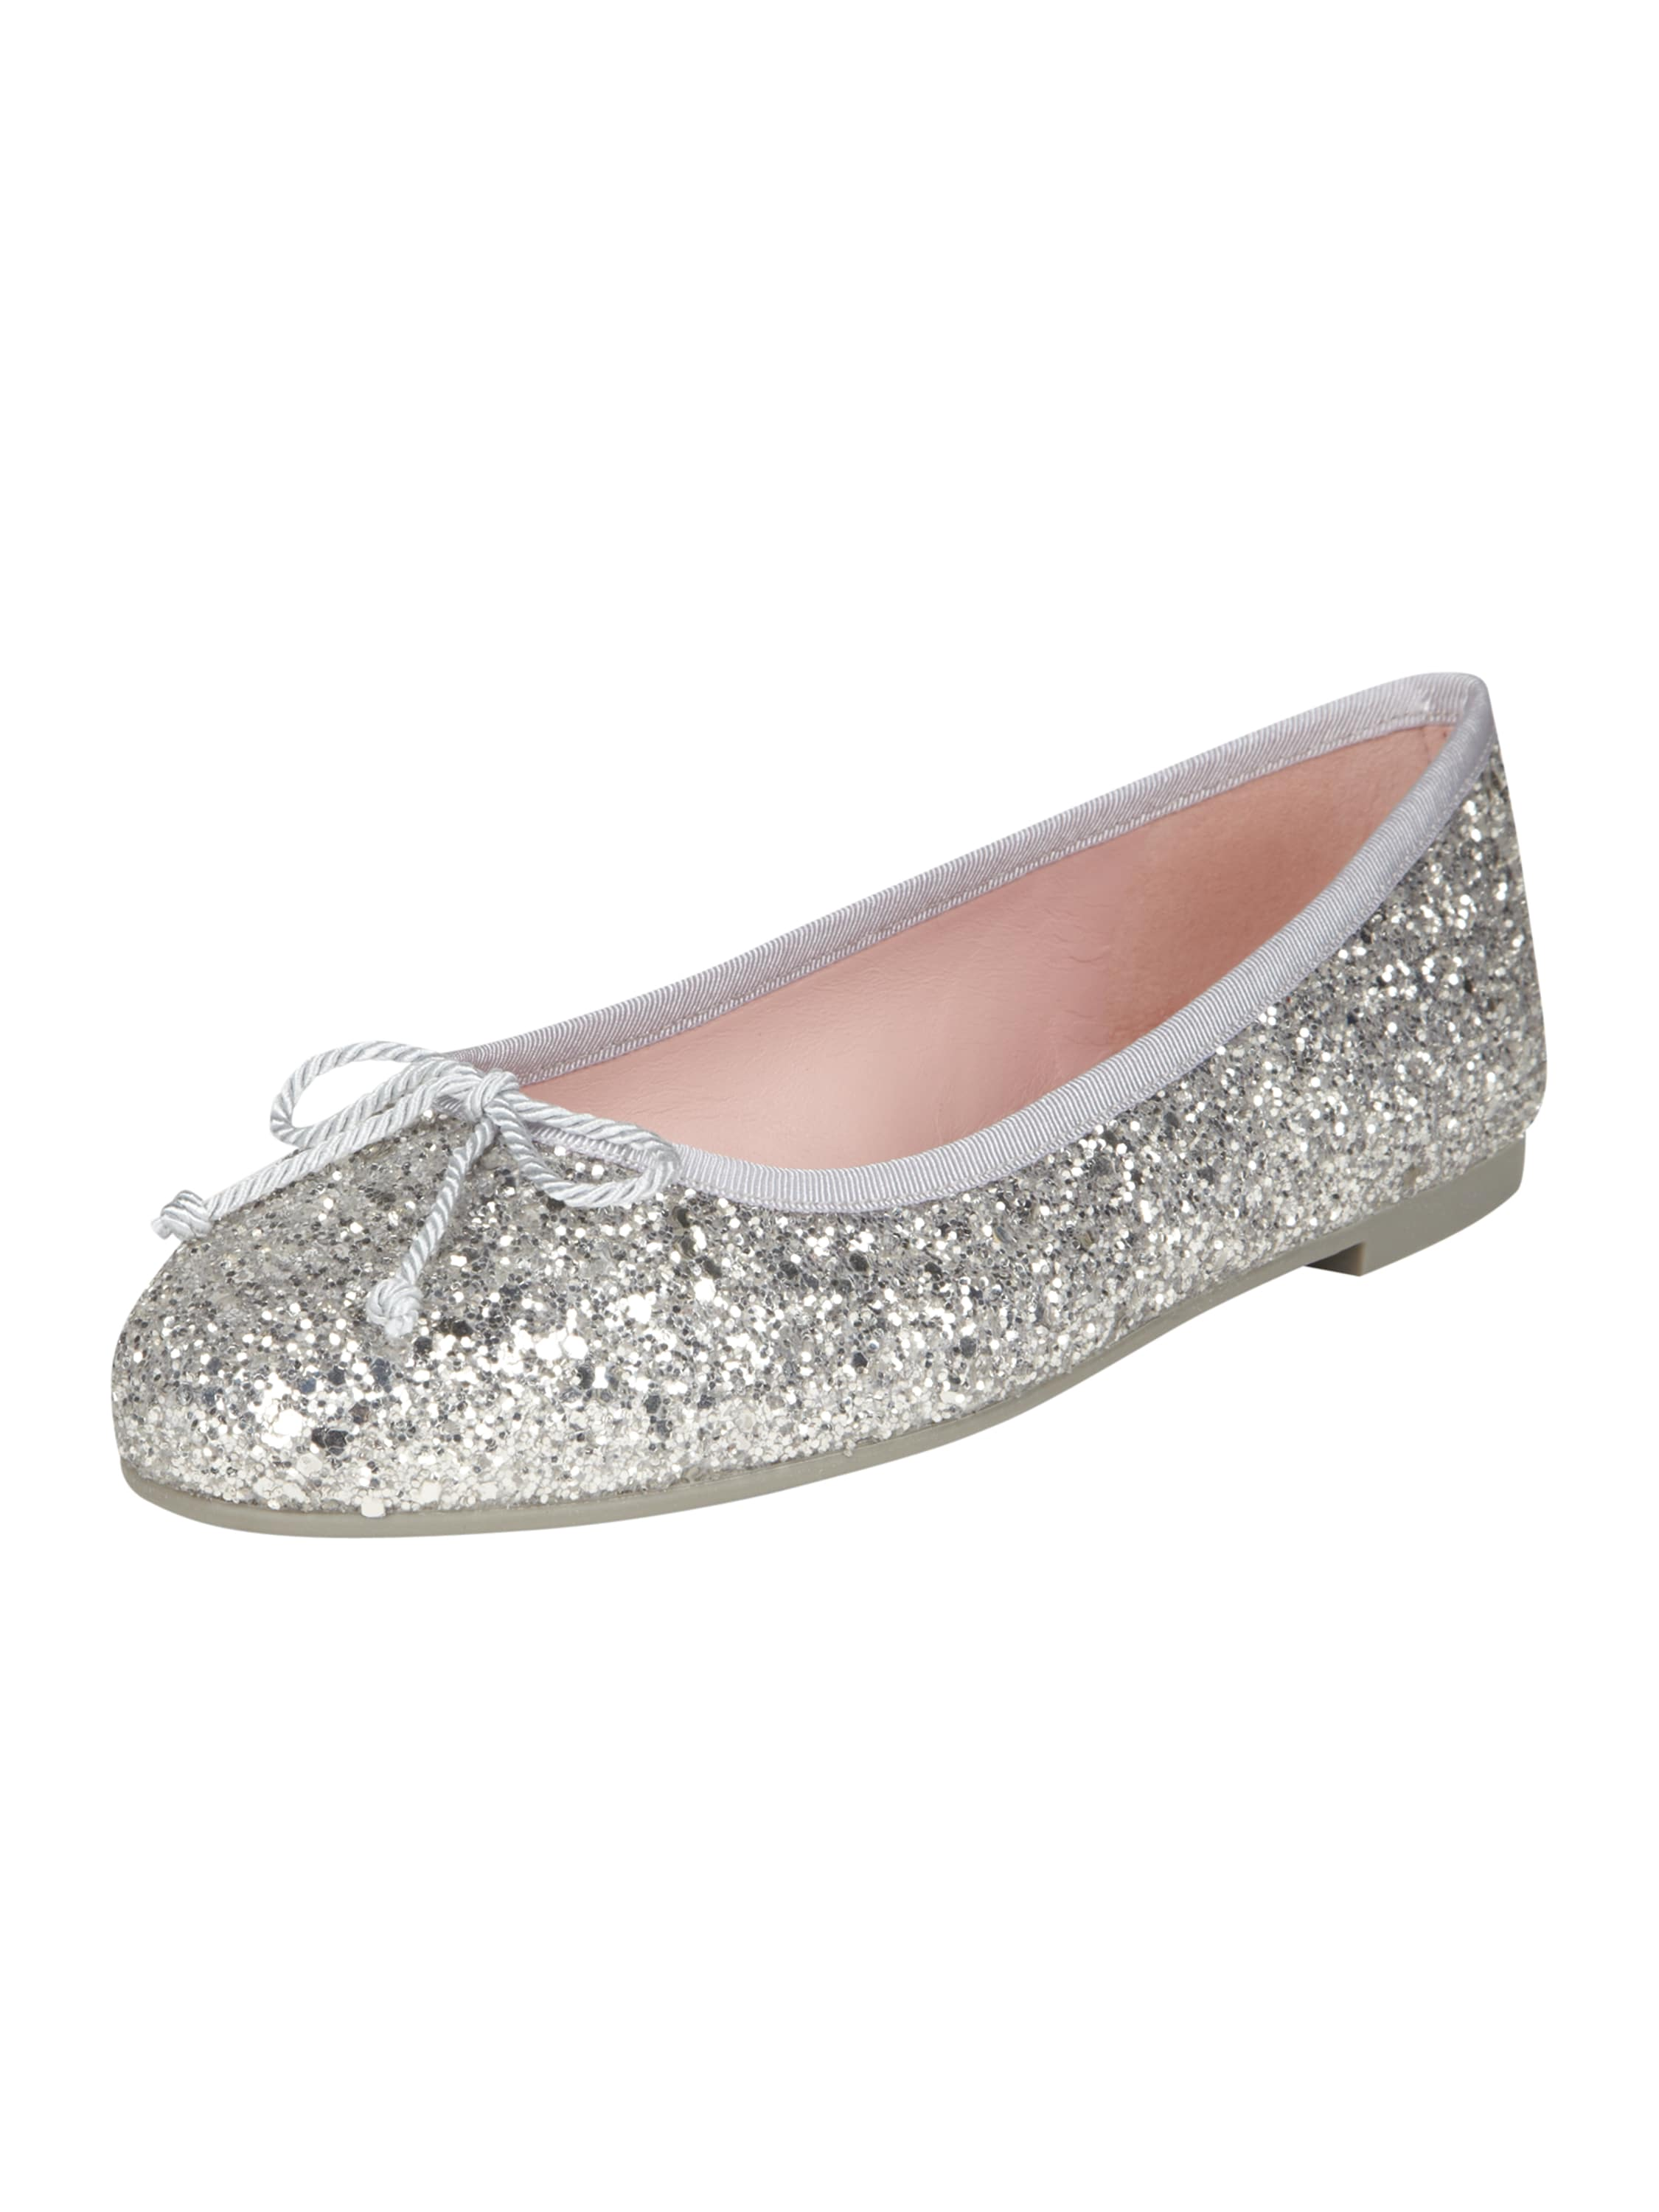 Ballerinas: Colonna Color: Blue Toe: Round toe Material: Glitter Heel: Flats - cm Insole: Leather Lining: Cotton Details: Adjustable cotton string JavaScript seems to be disabled in your browser.